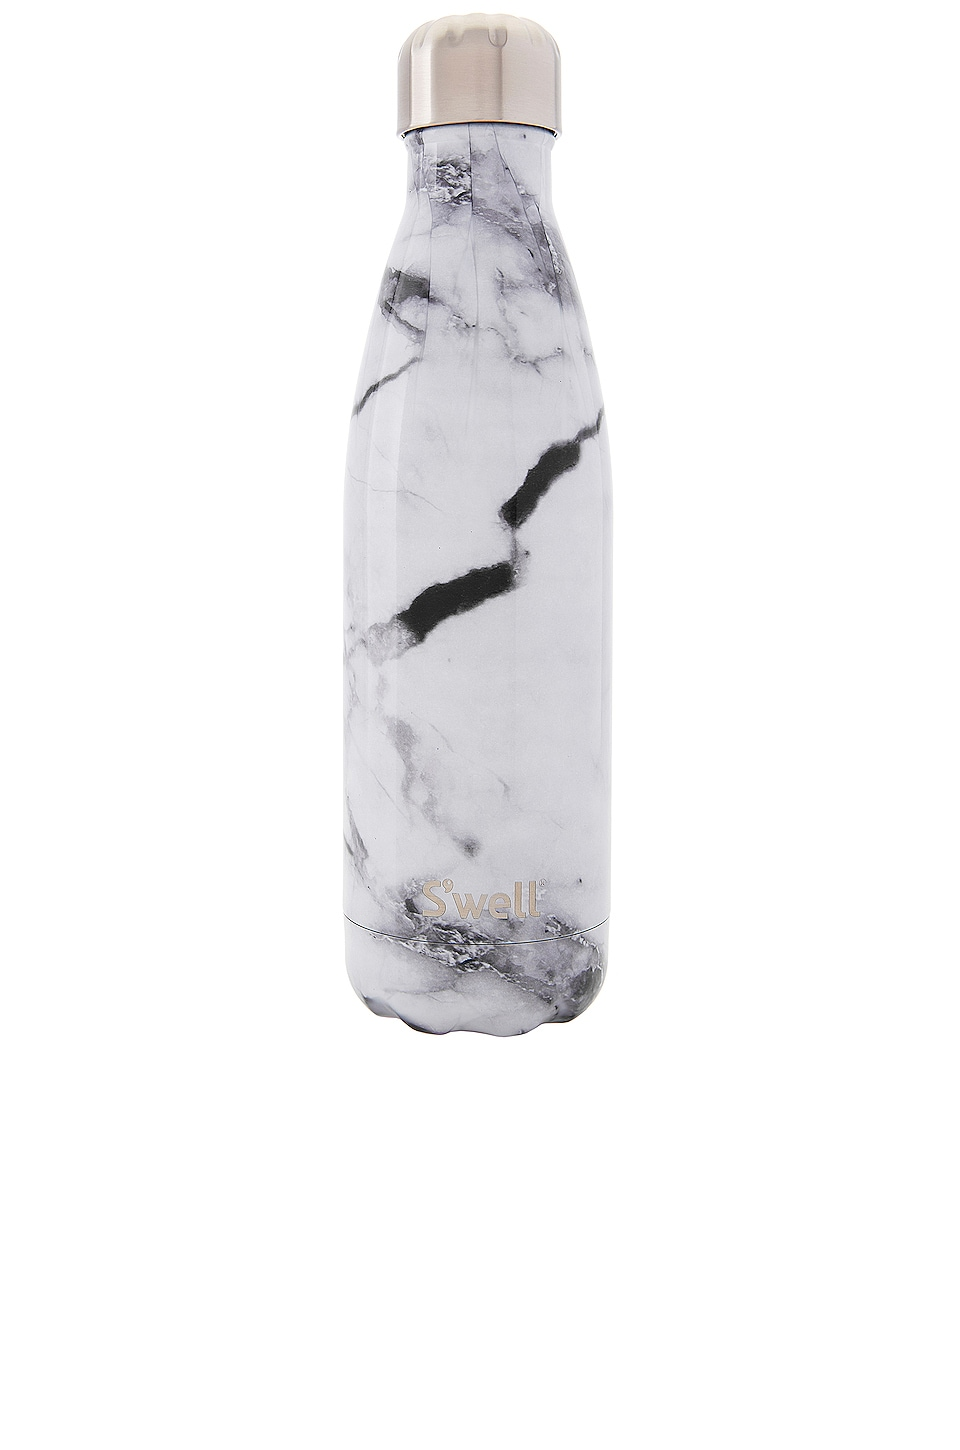 S'well Elements 17oz Water Bottle in White Marble